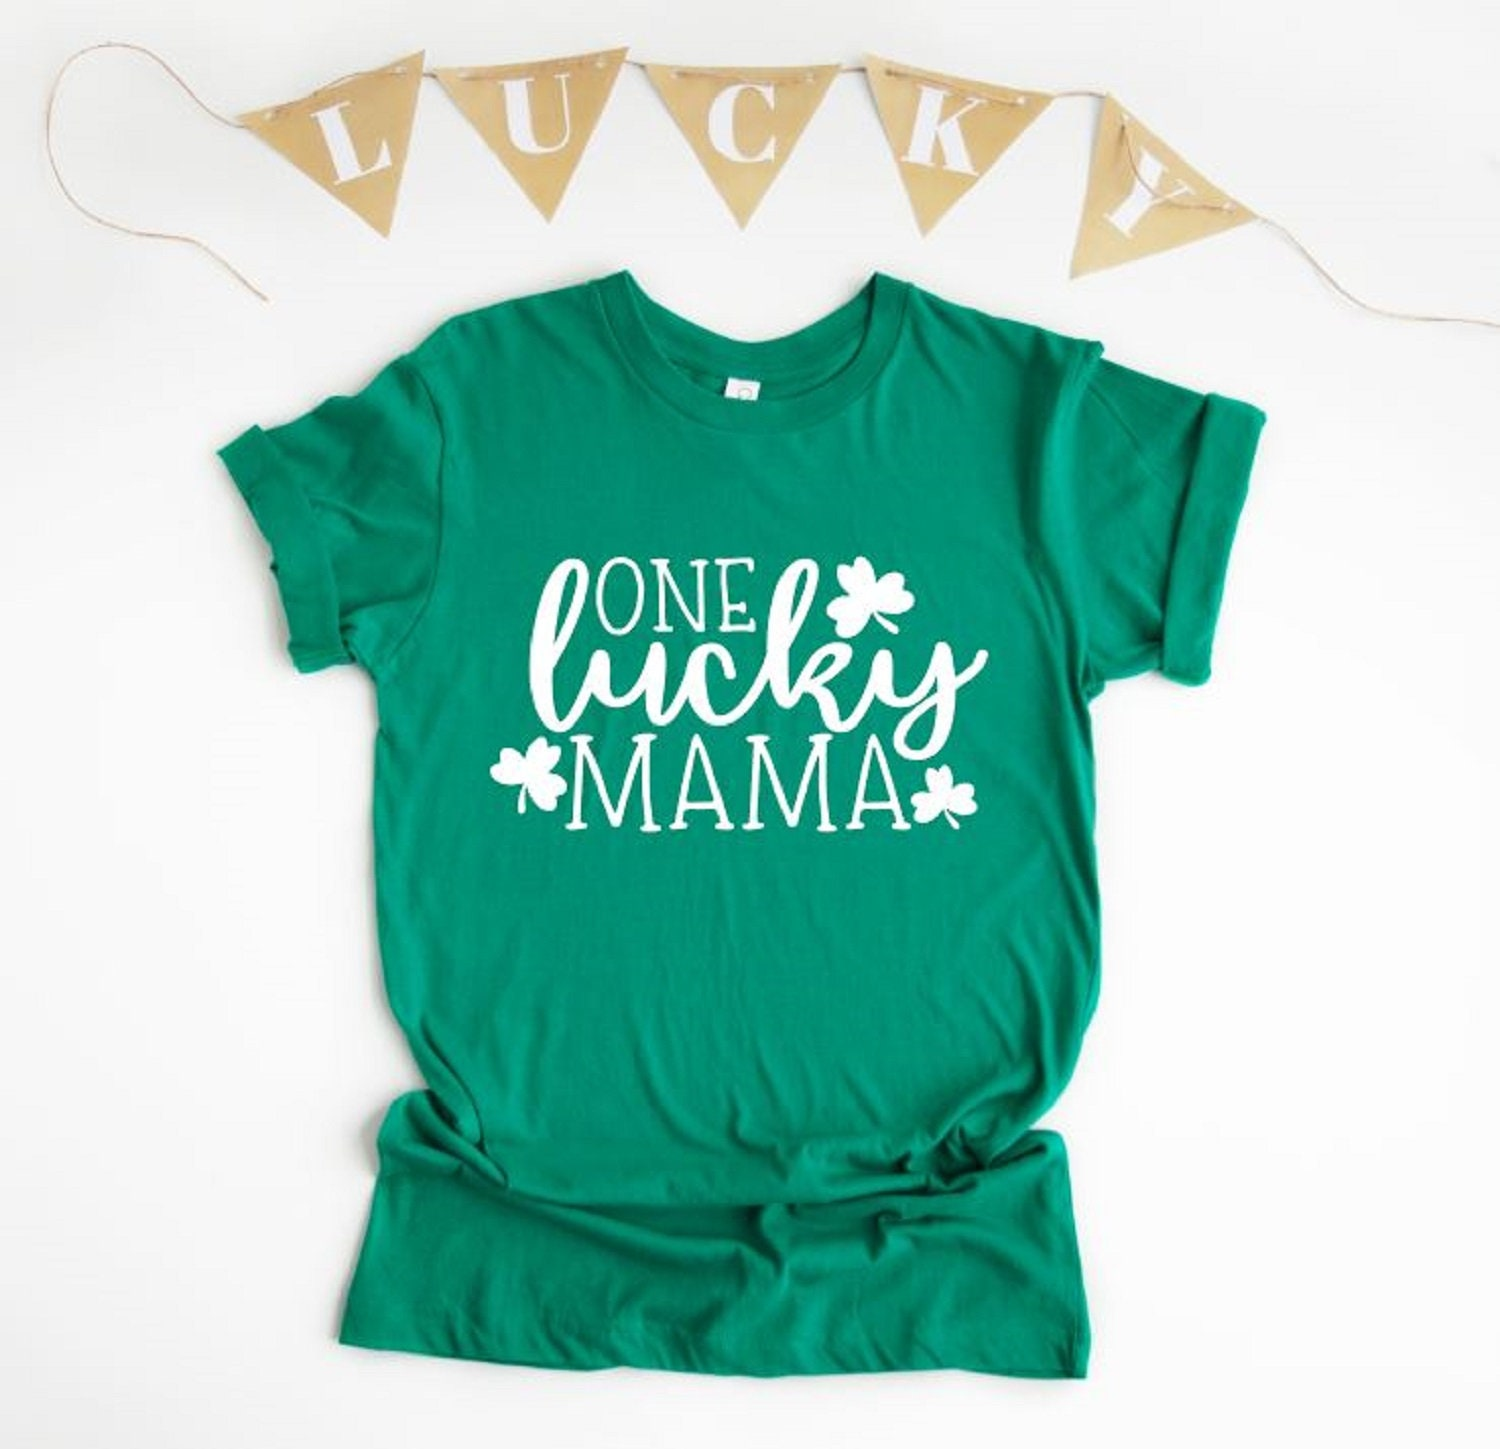 e606523a4 One Lucky Mama One Lucky Mama Shirt St. Patrick's Day | Etsy